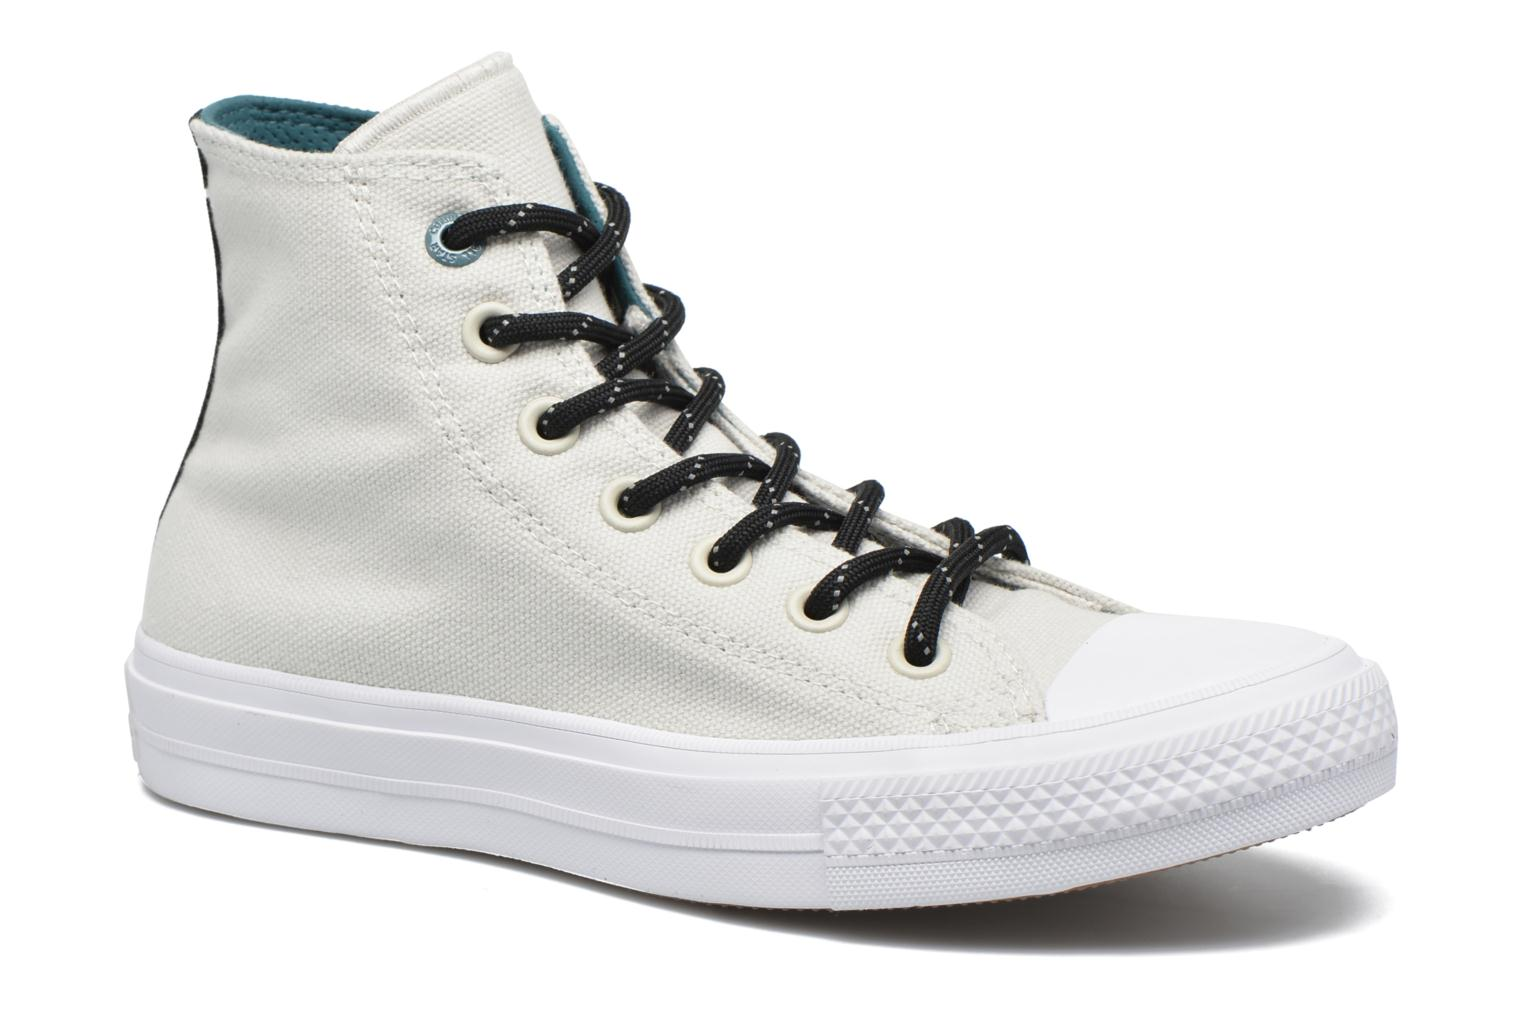 Chuck Taylor All Star II Hi W by Converse